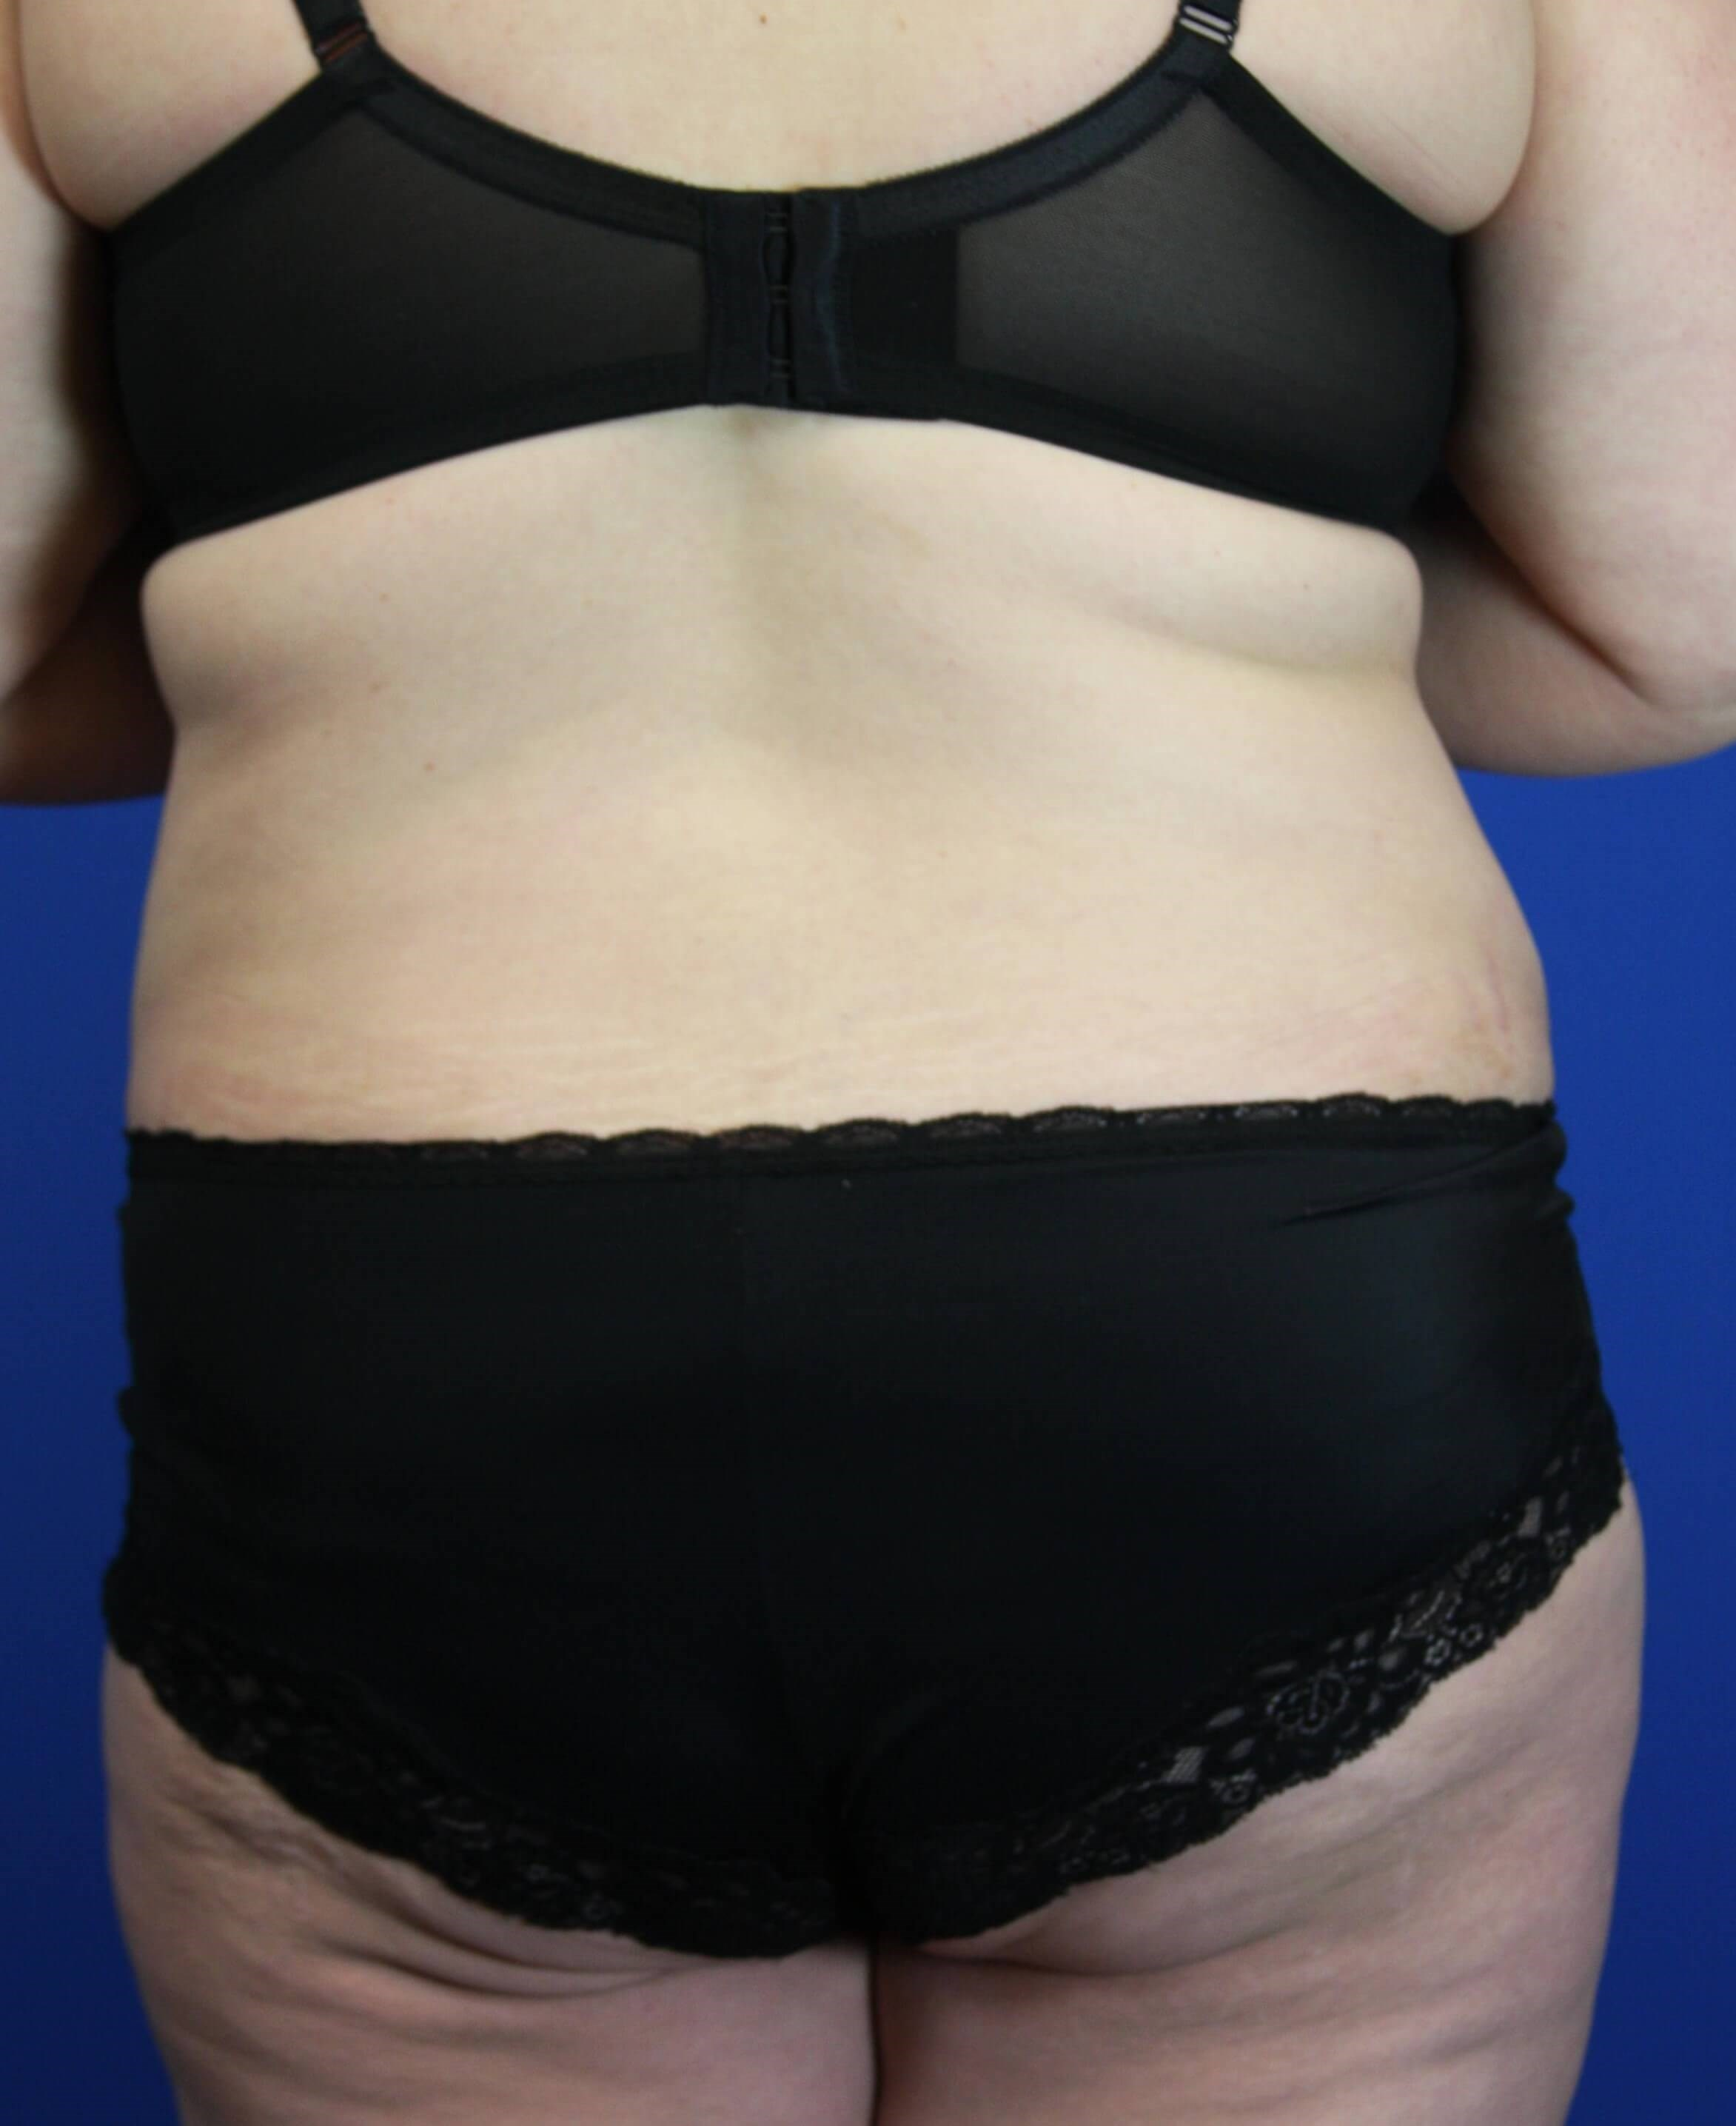 Tummy Tuck, Downers Grove, IL 3 months after